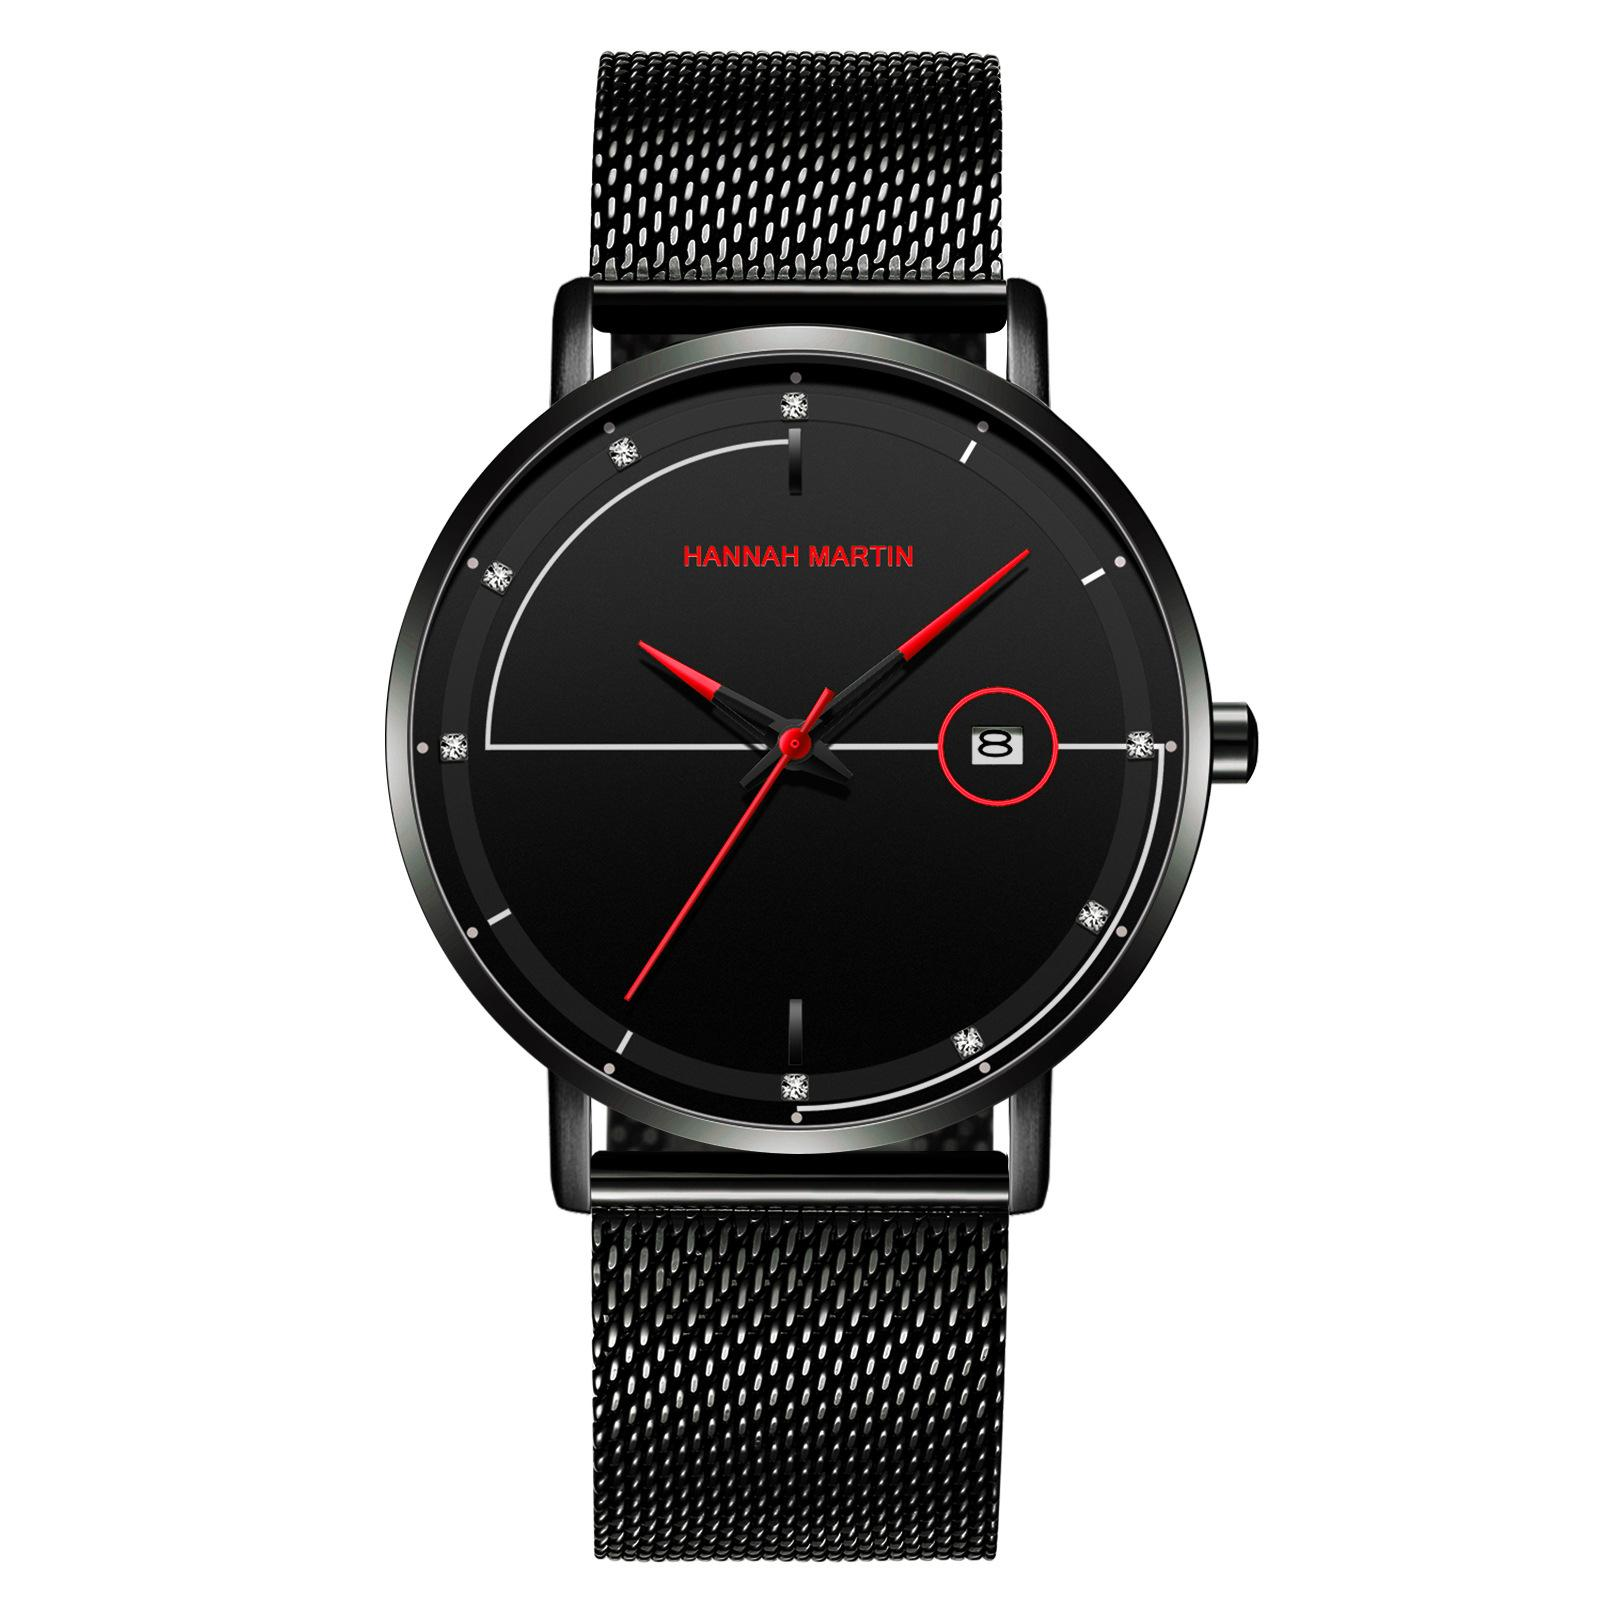 New 316 Stainless Steel Watch Band Men Wach Simple Style Black 4 Colour Quartz Movement Daily Waterproof Watch 40mm